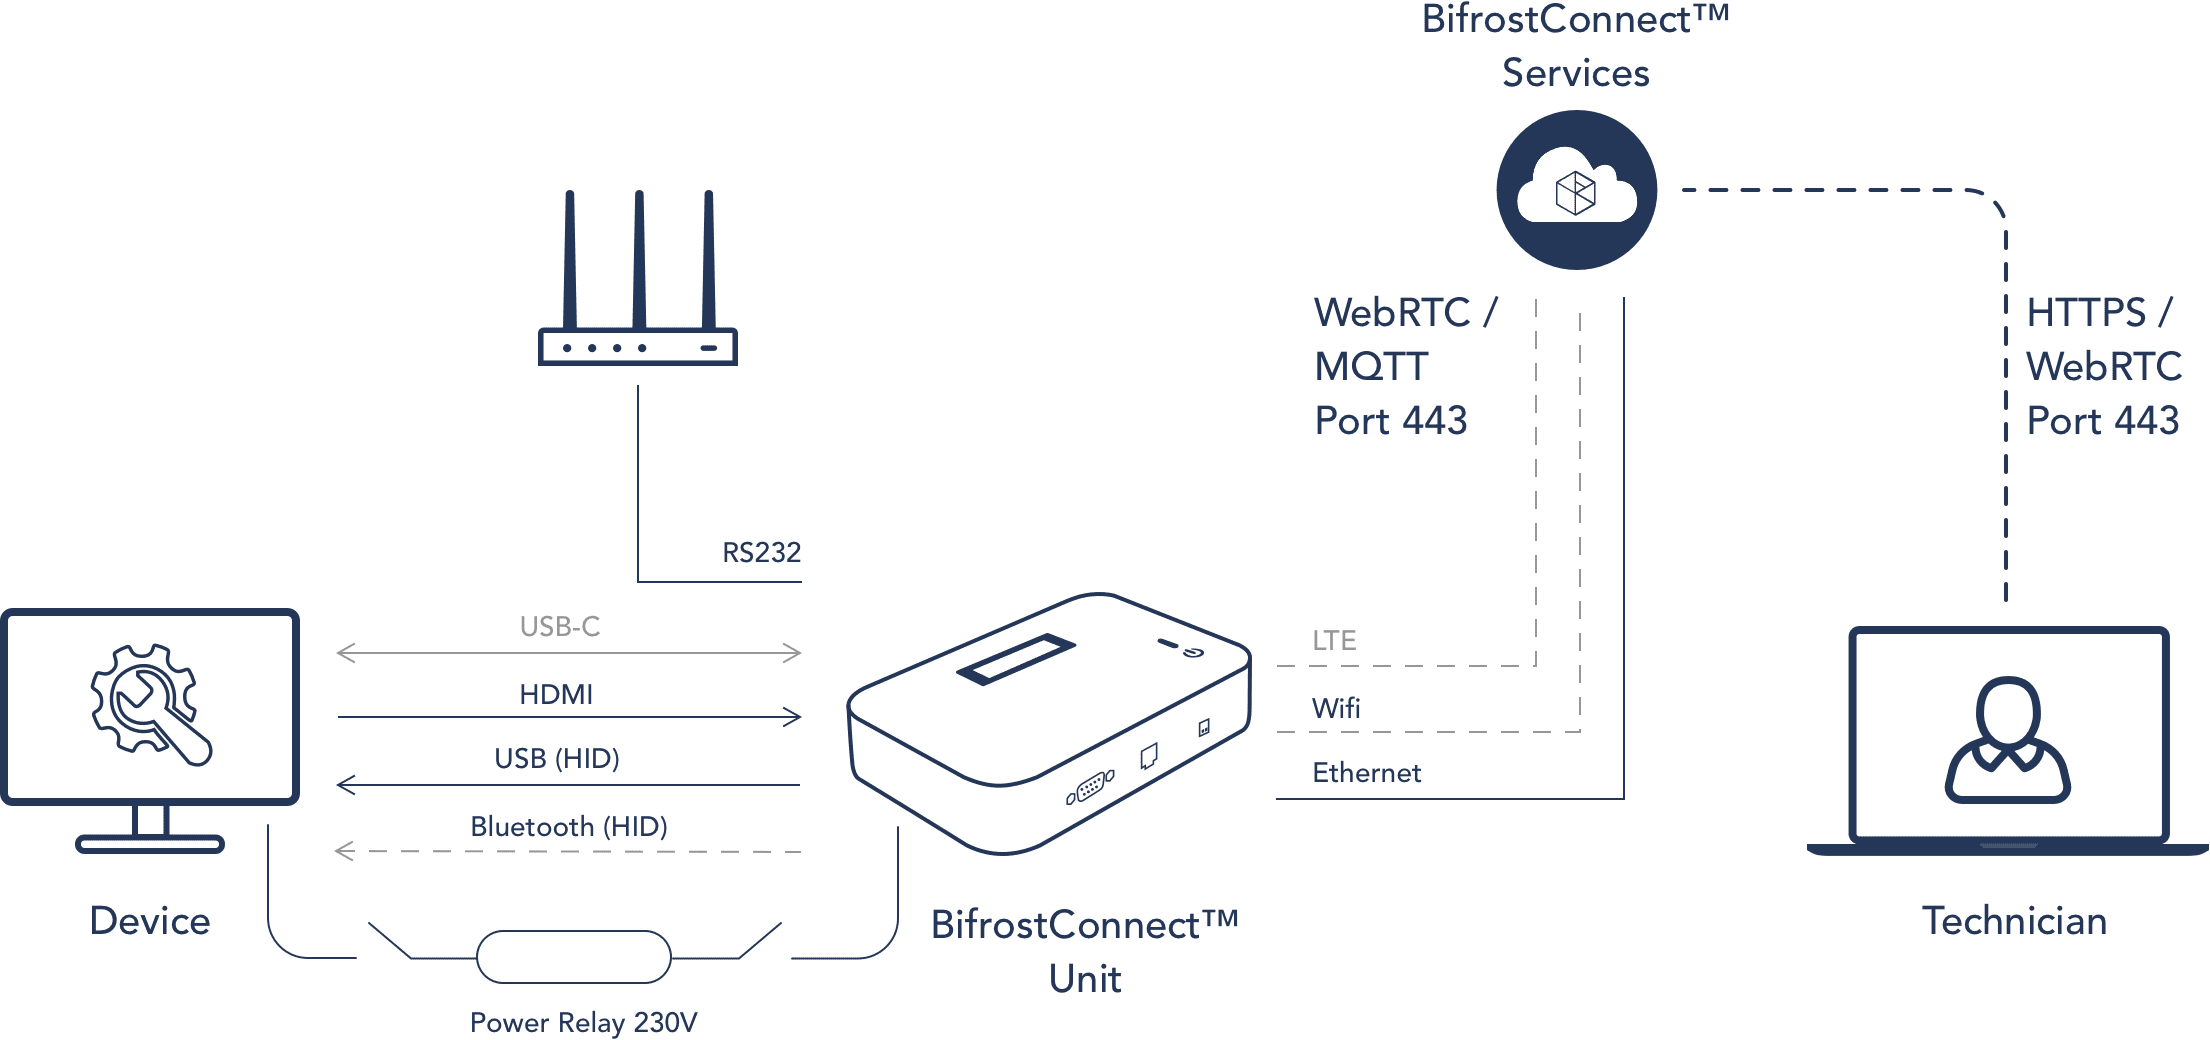 The BifrostConnect solution